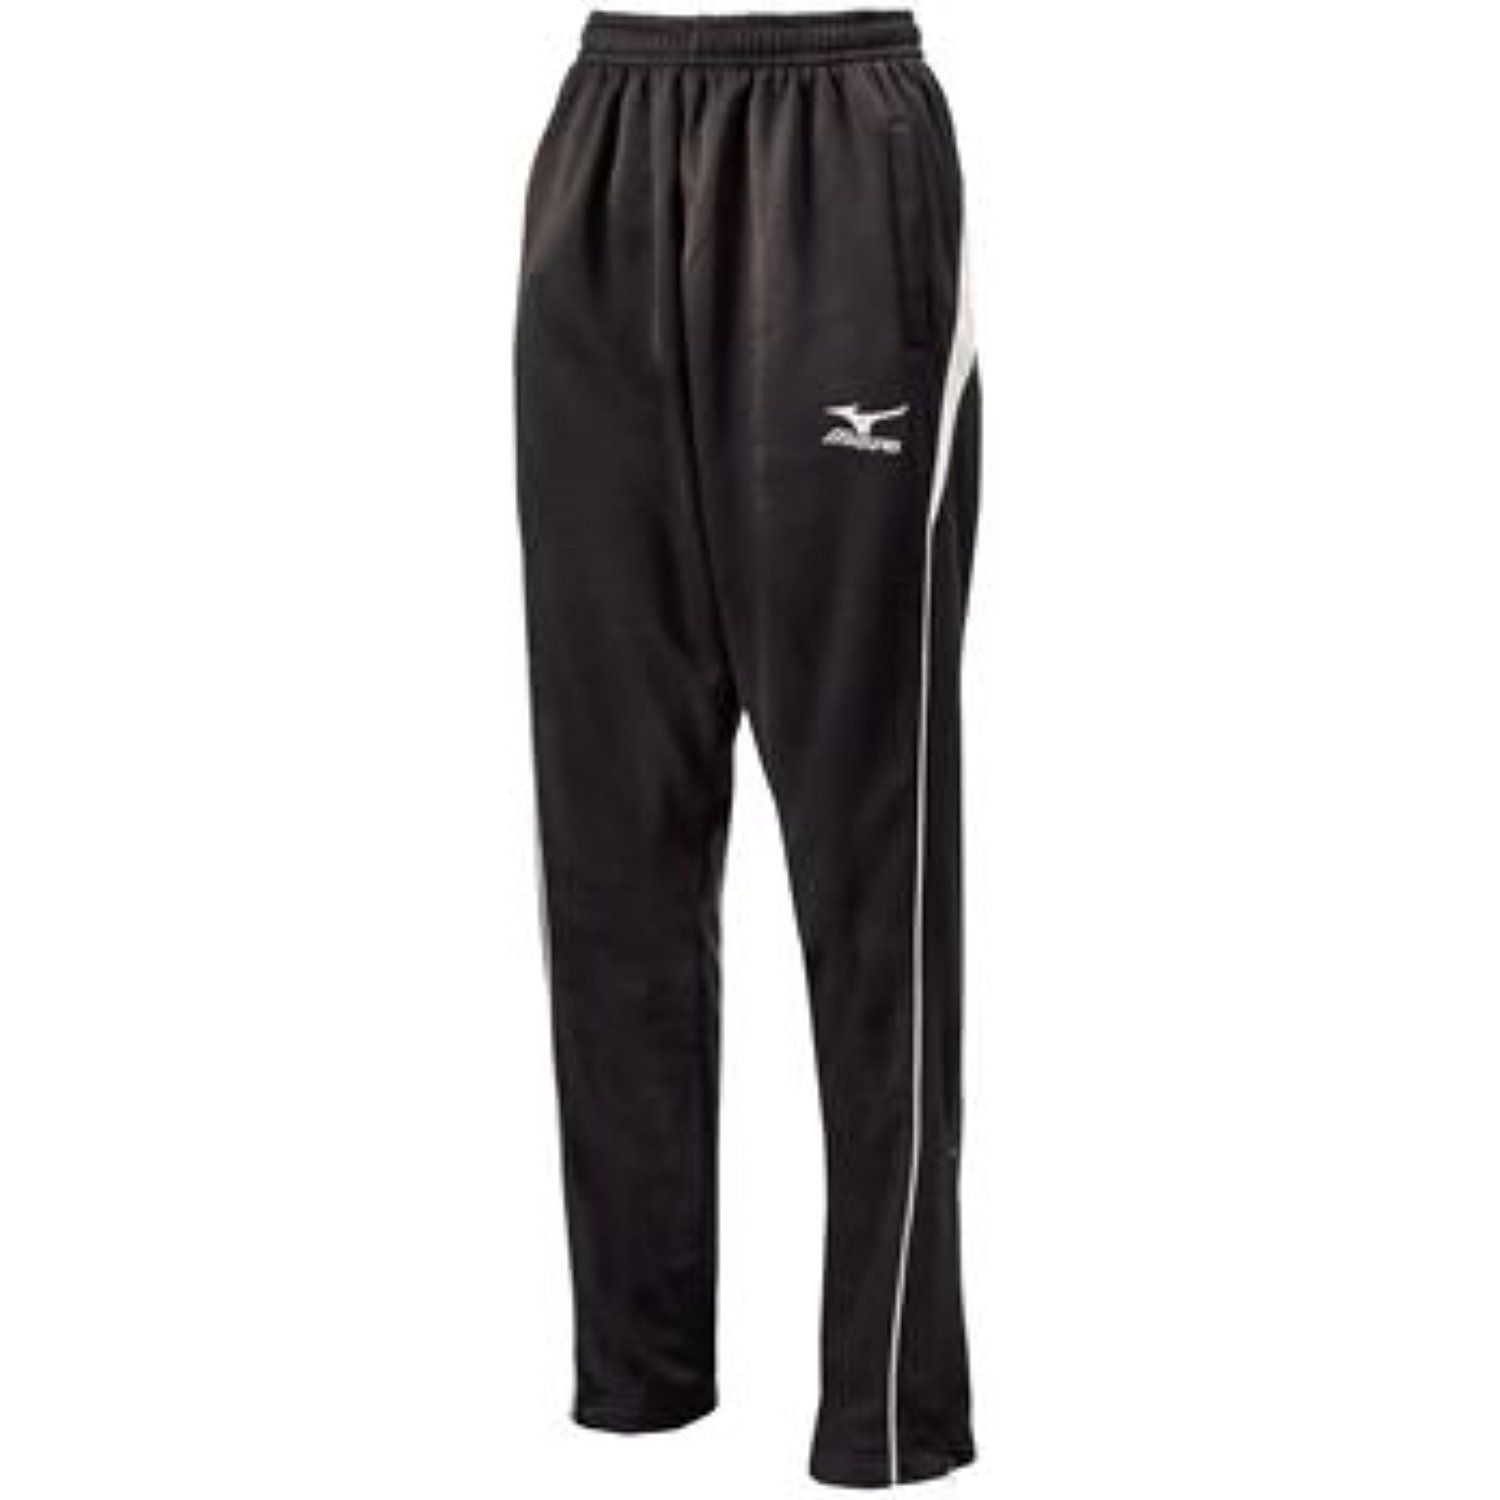 Mizuno Women S Team Iii Warm Up Long Pant Black Xs More Info Could Be Found At The Image Url This Active Wear For Women Volleyball Outfits Team Jackets